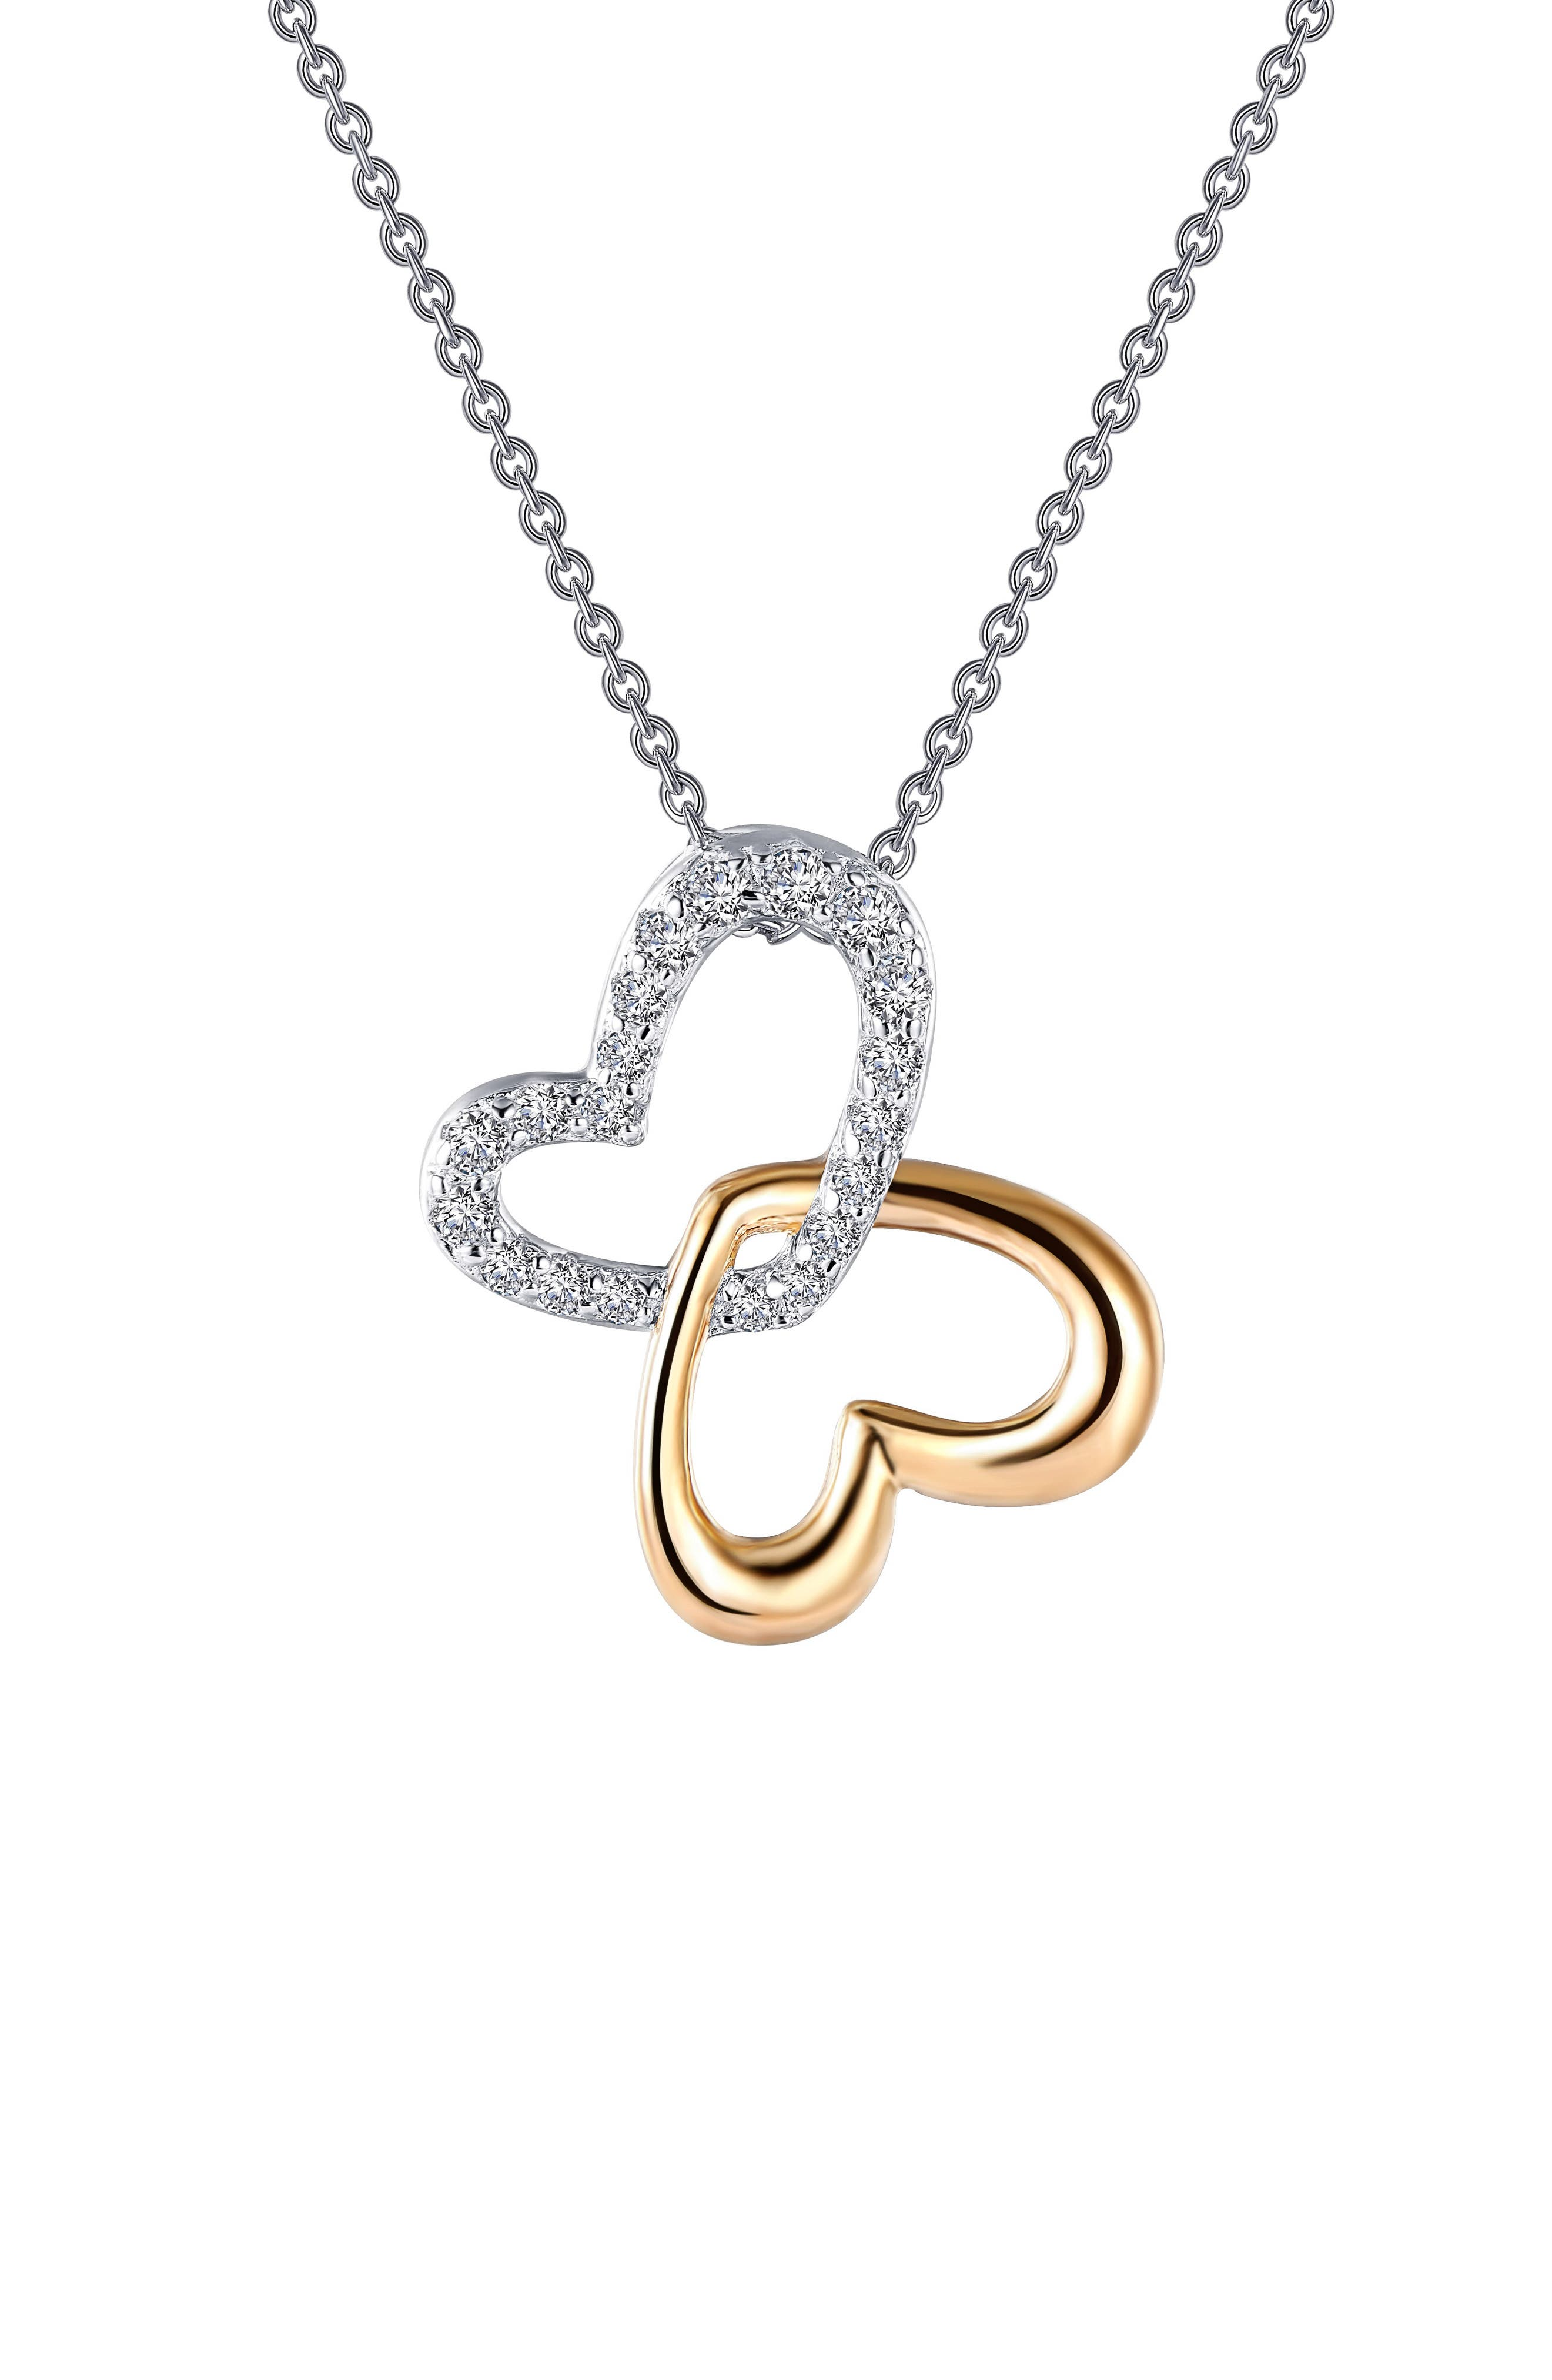 Two-Tone Hearts Pendant Necklace